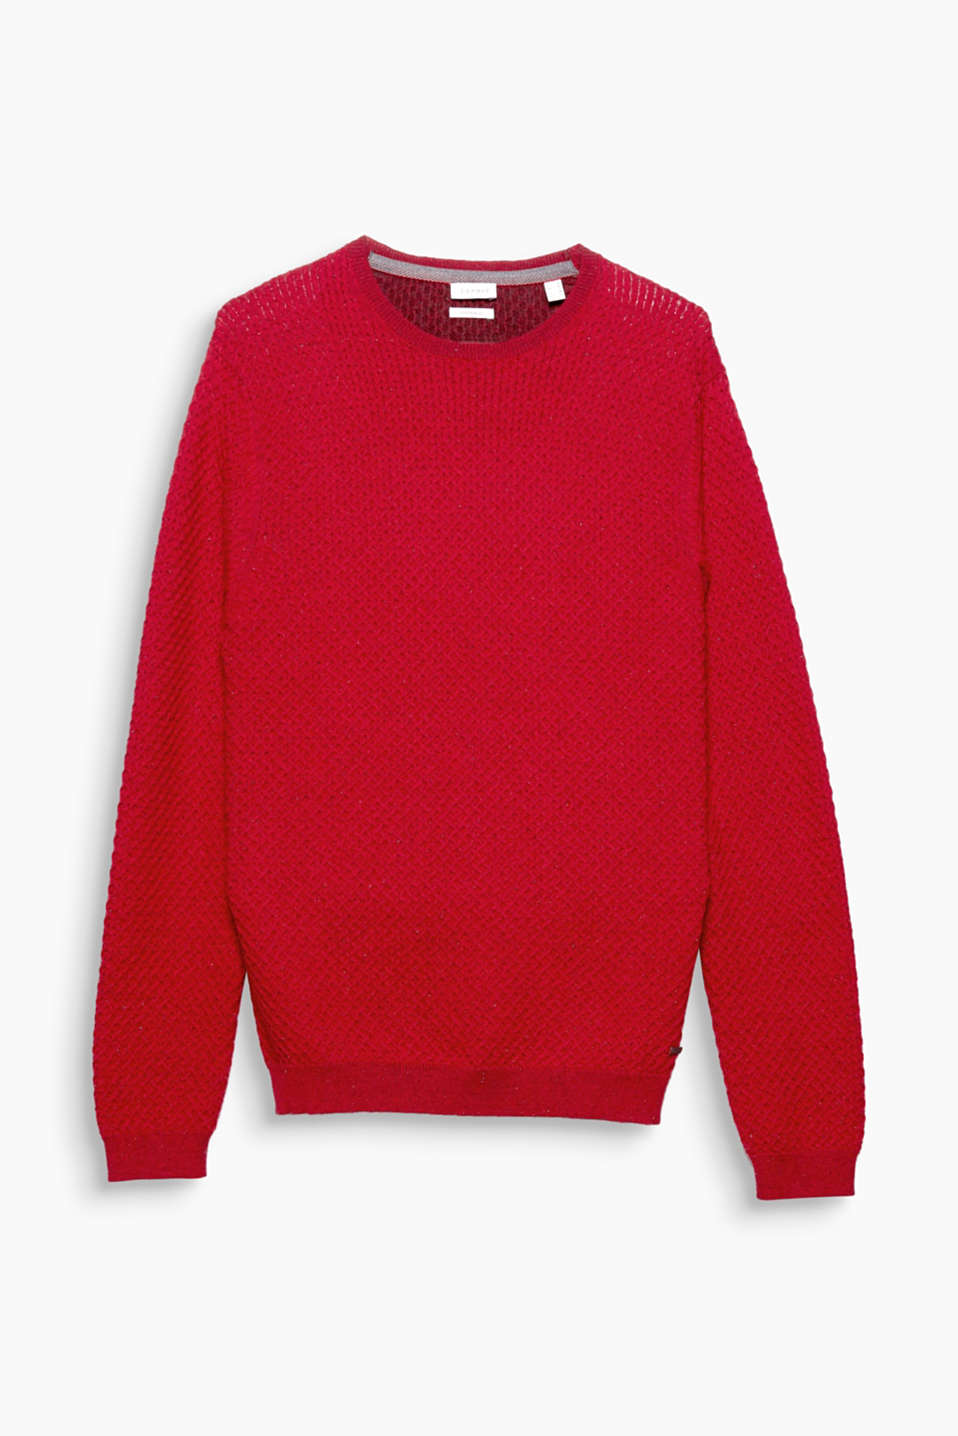 Casual knitwear! The textured yarn and exquisite dimpled finish make this jumper a warm and toasty fave.